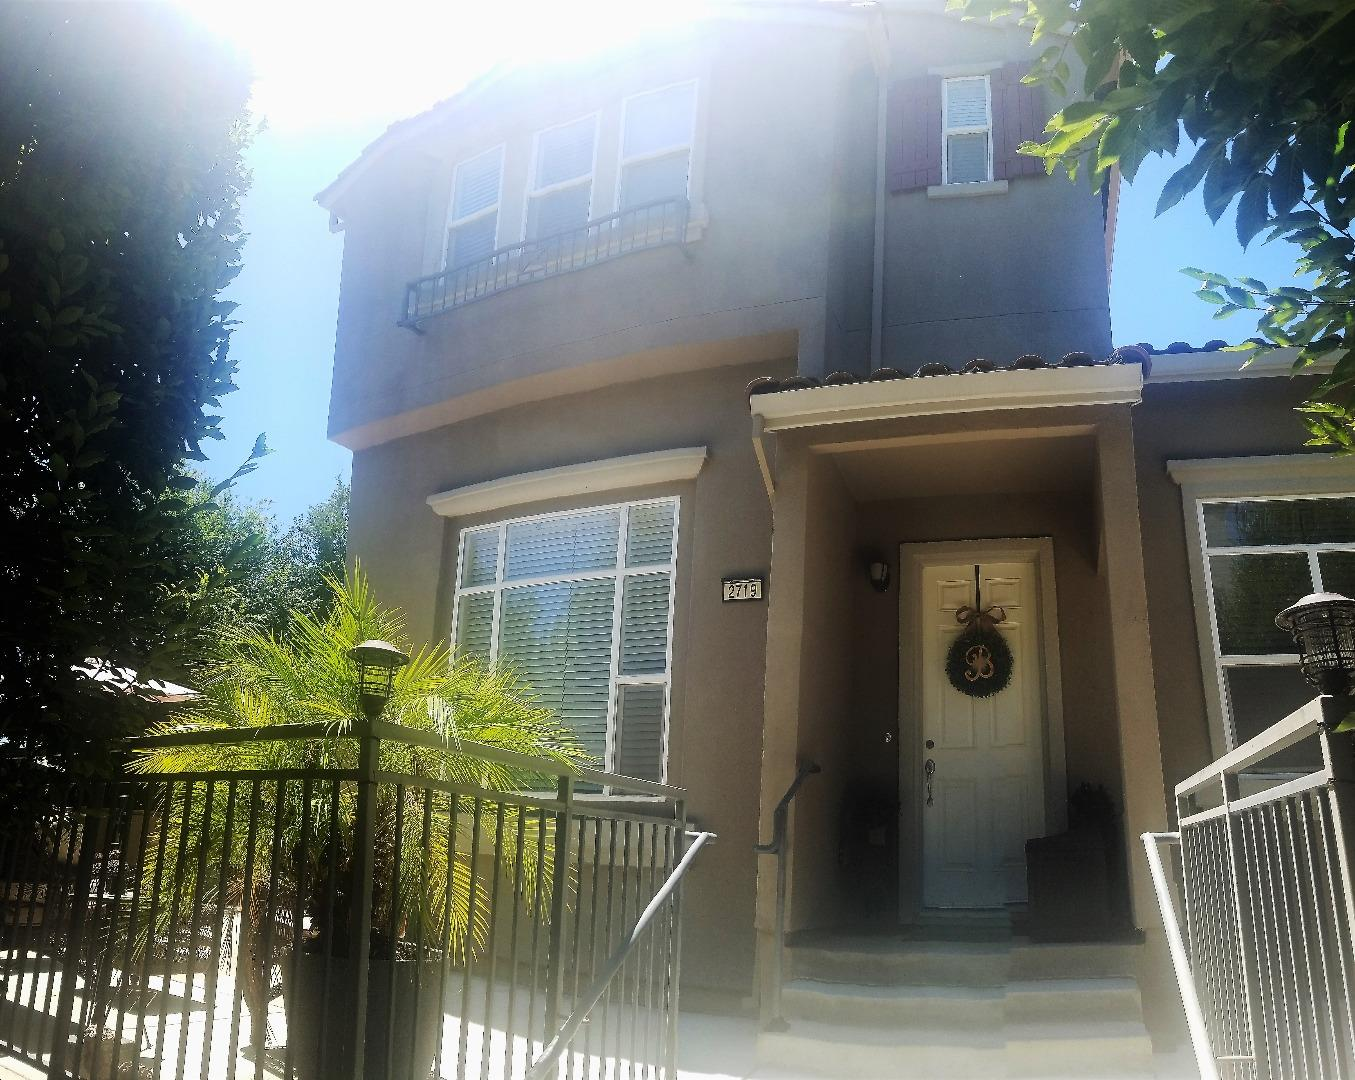 Additional photo for property listing at 2719 Corde Terra Circle  San Jose, Kalifornien 95111 Vereinigte Staaten